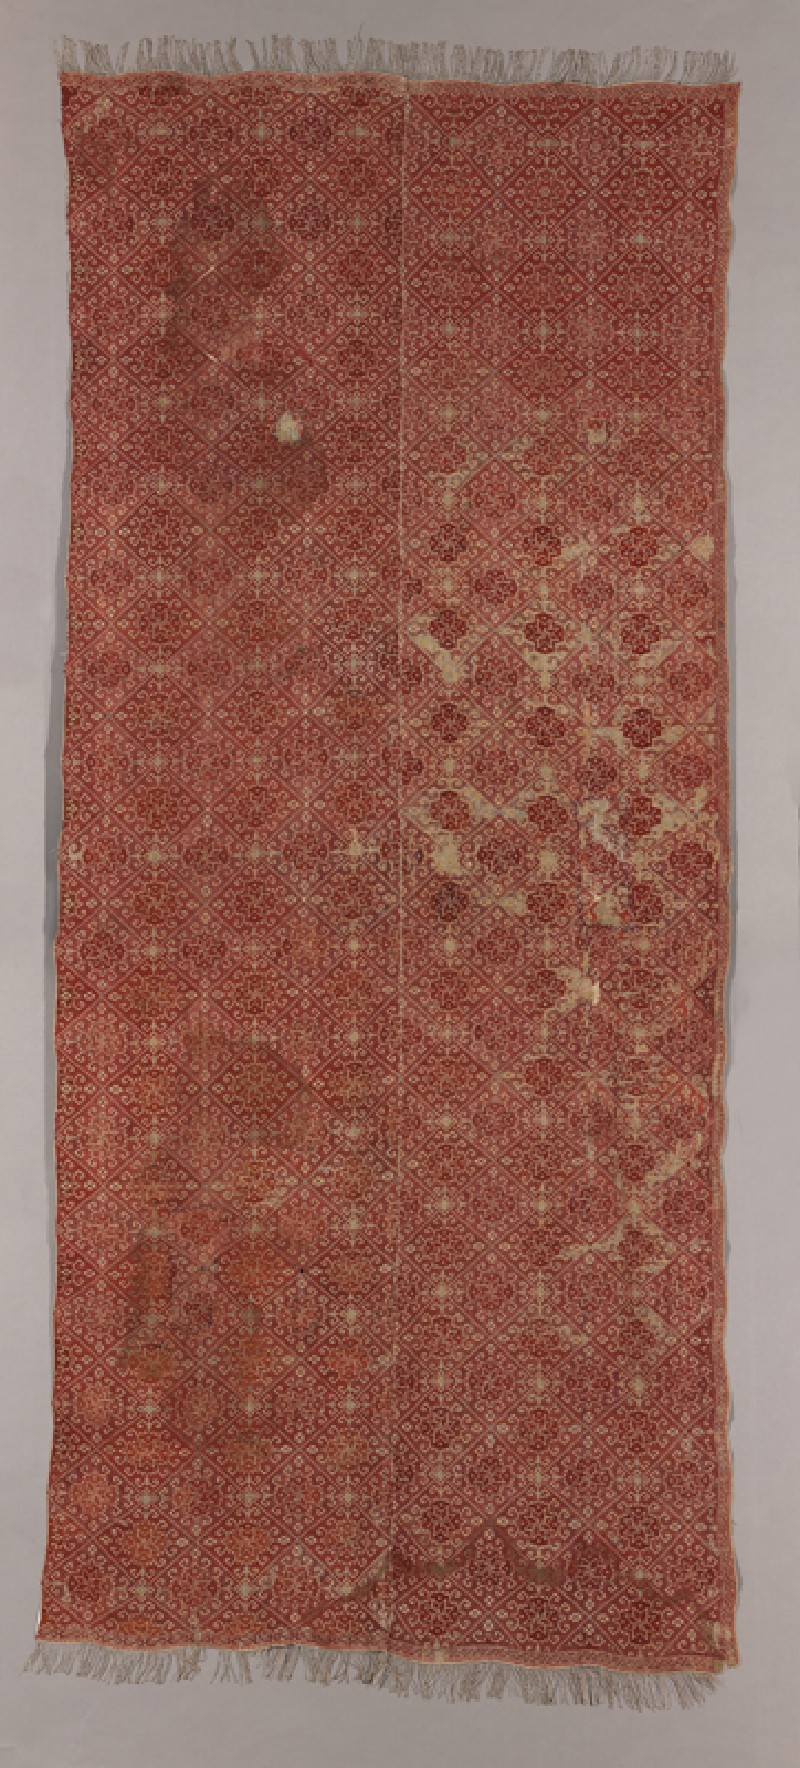 Coverlet with diamond-shapes containing medallions and protruding hooks (EA1978.114, front            )